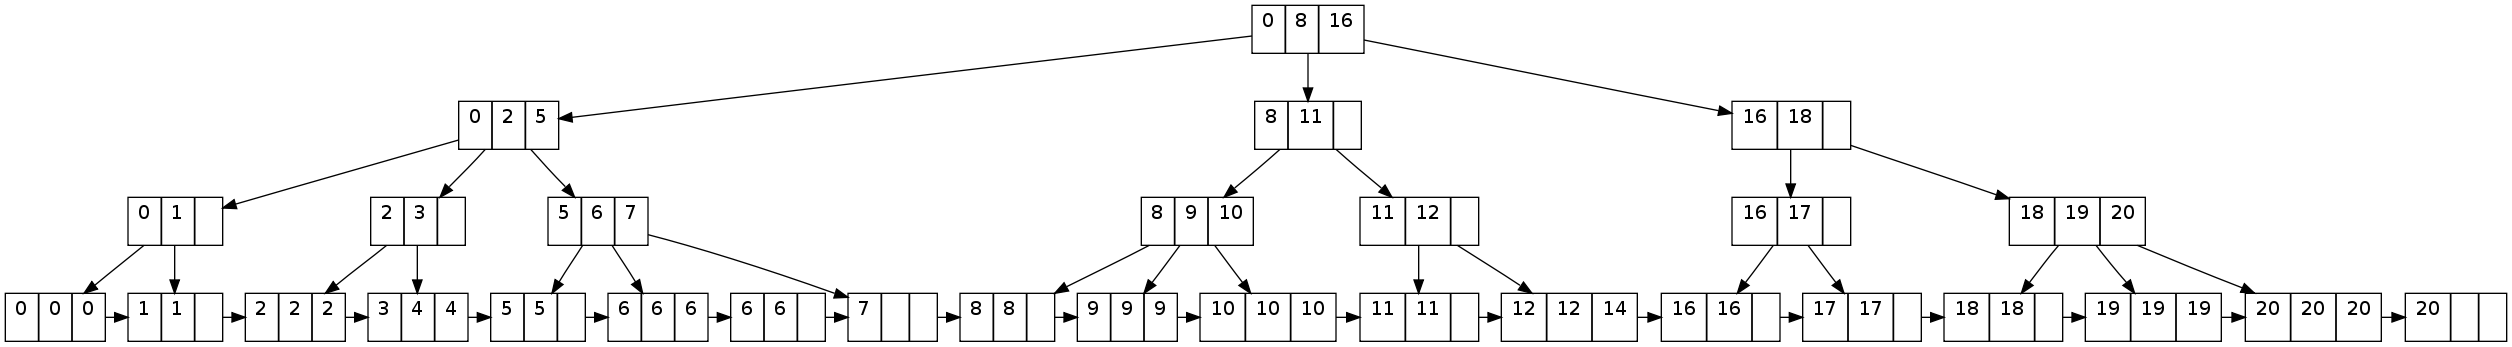 Example B+Tree with Duplicate Keys